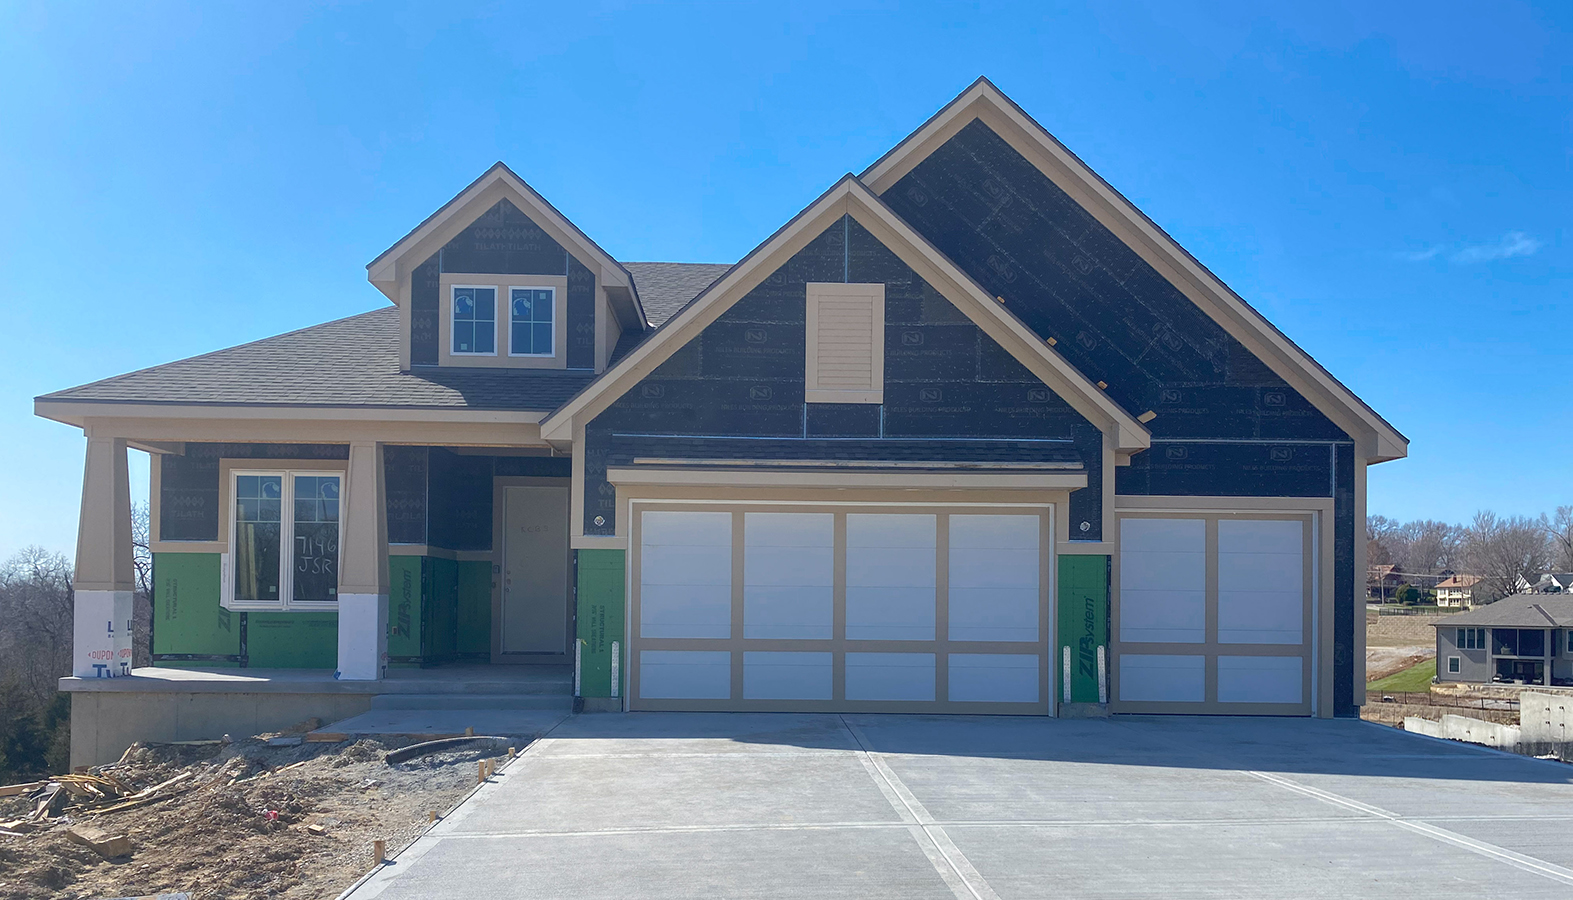 exterior view of new home build 7146 Westgate St.